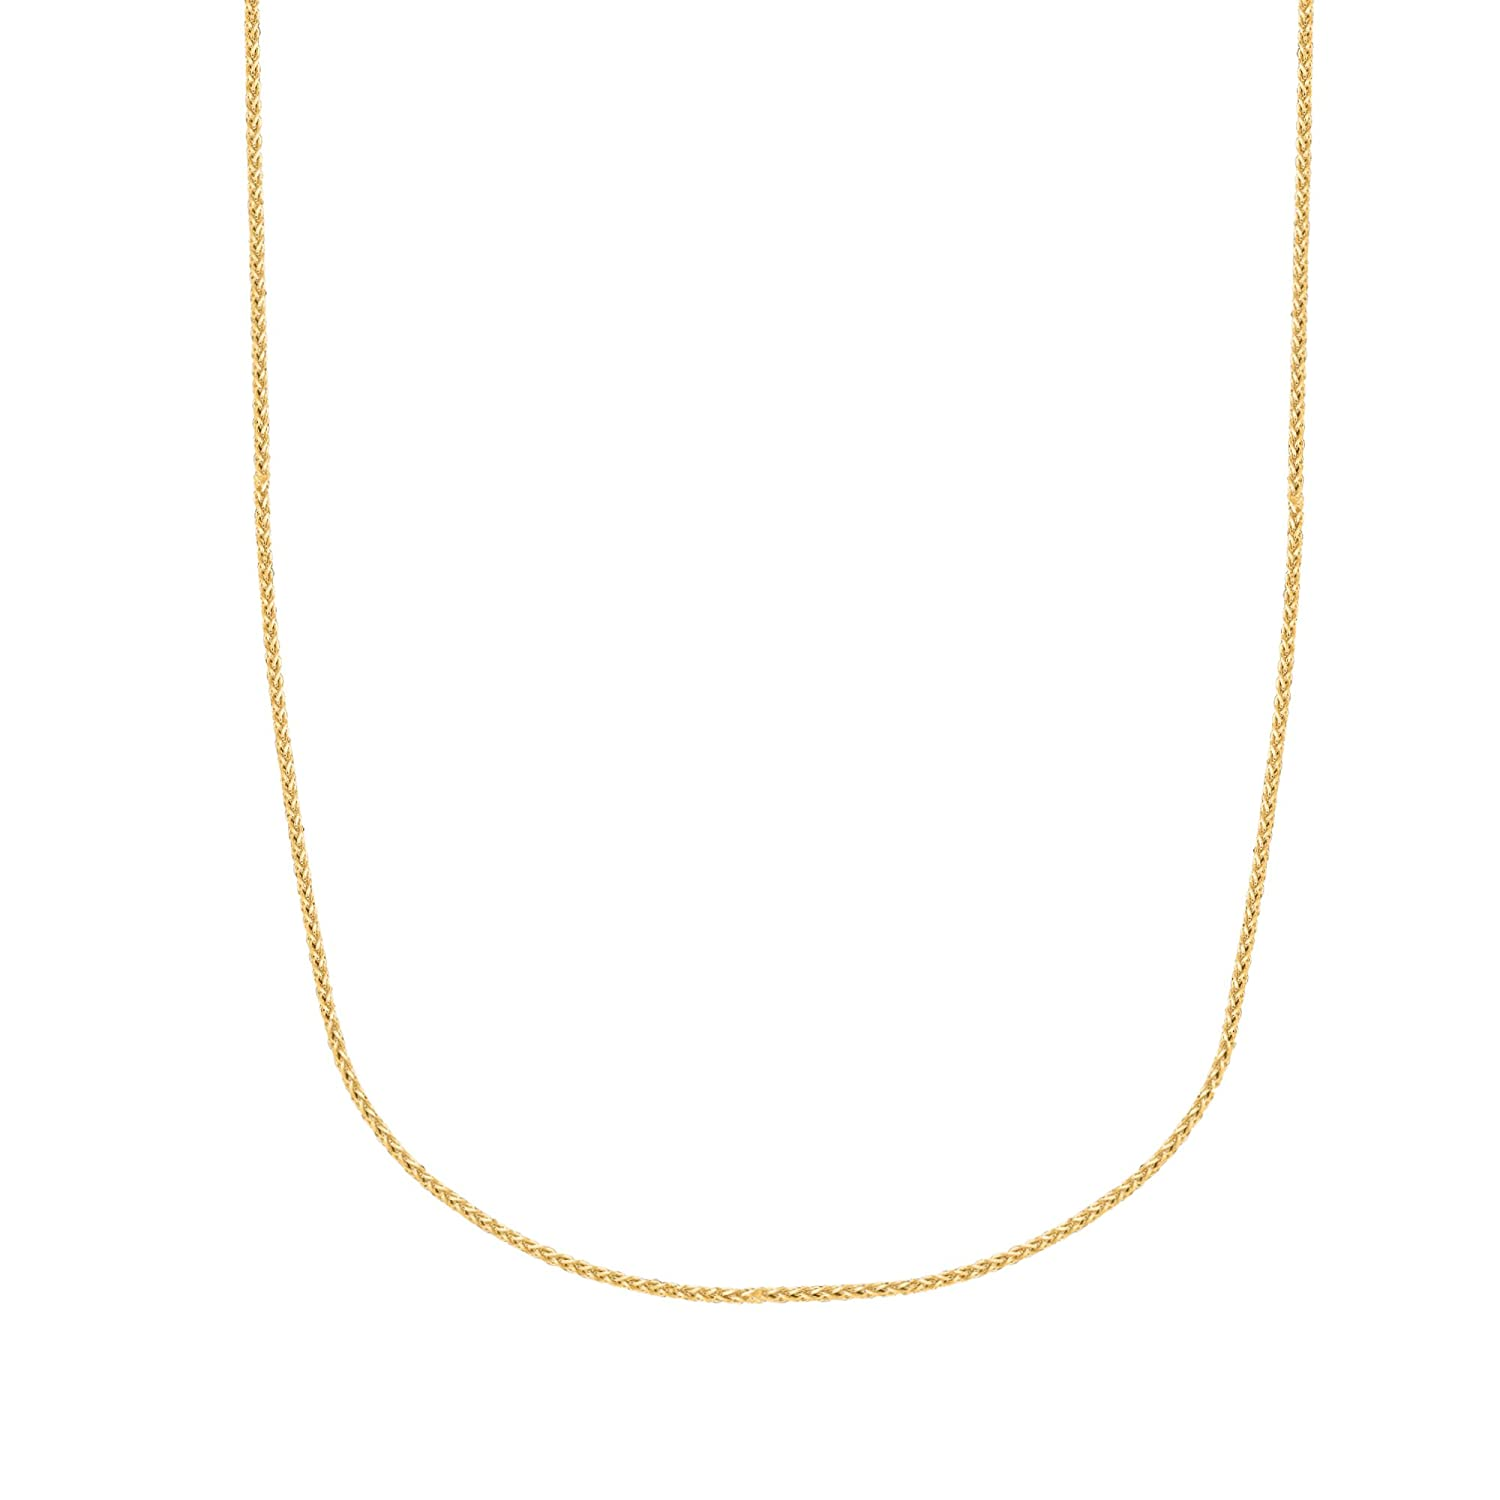 10k Solid Yellow Gold Round Wheat Link Chain Necklace 1 mm 16 Inches Ritastephens